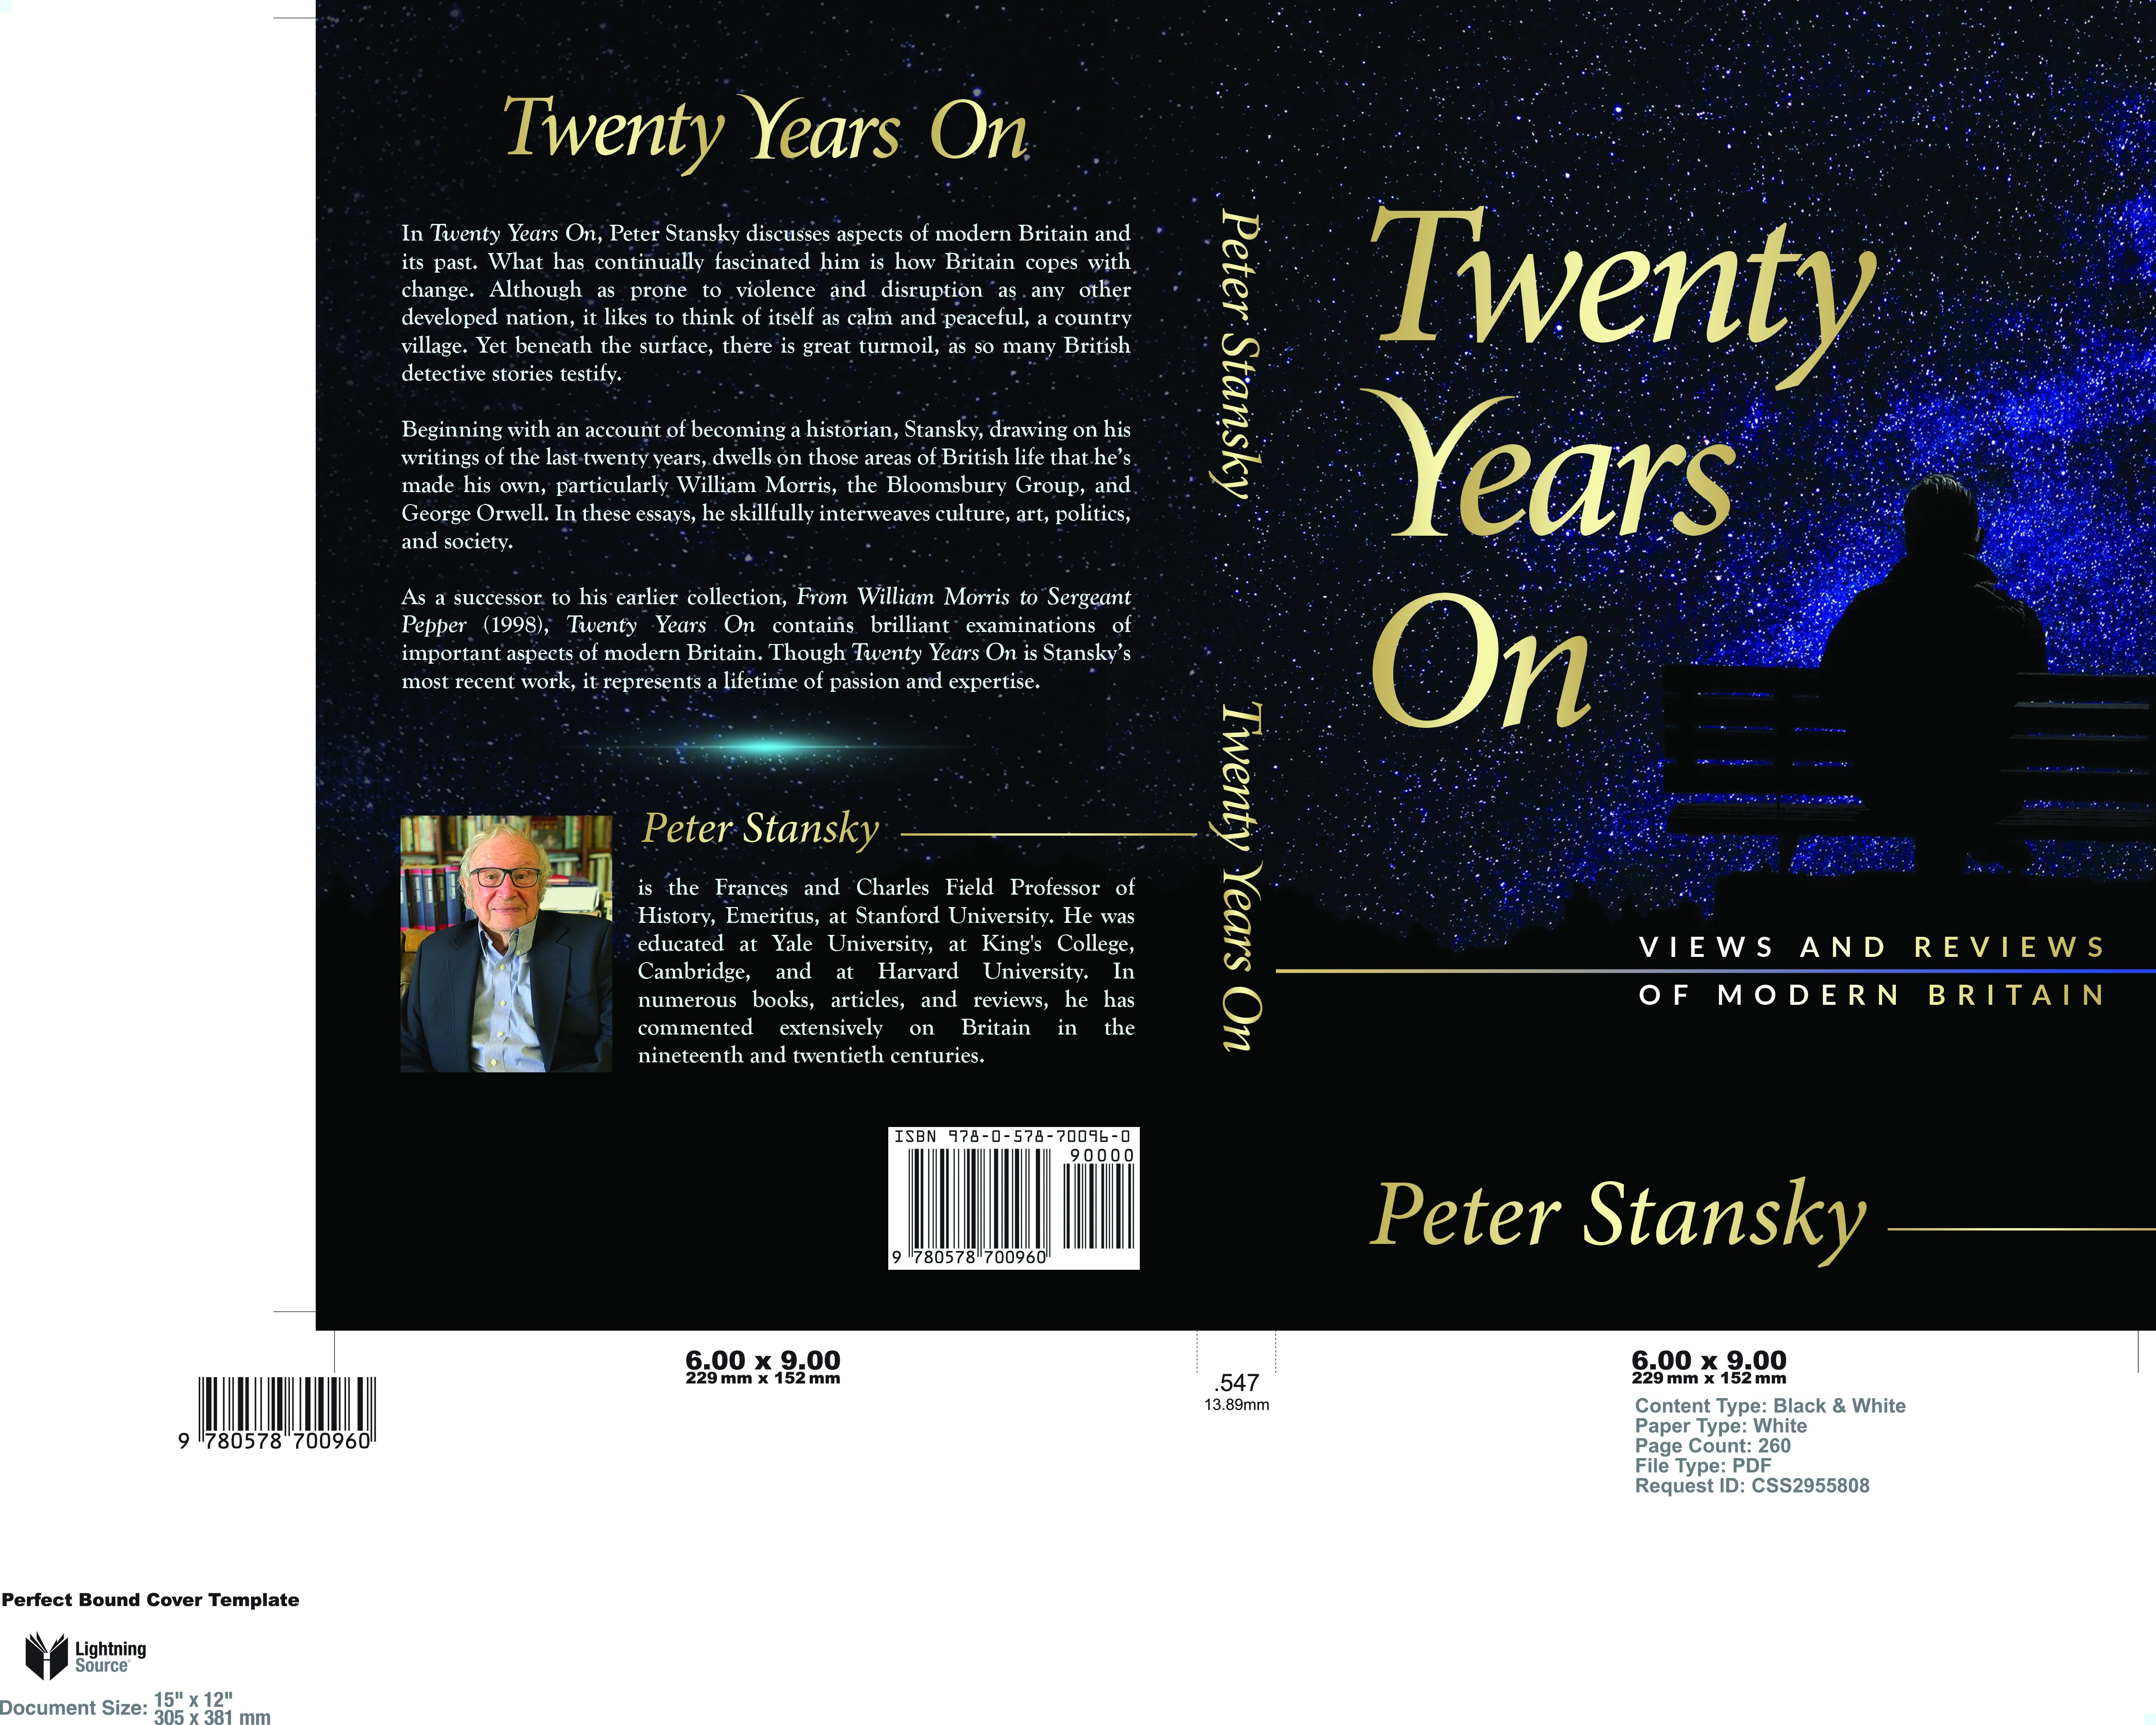 Simple nonfiction cover for retired Stanford professor